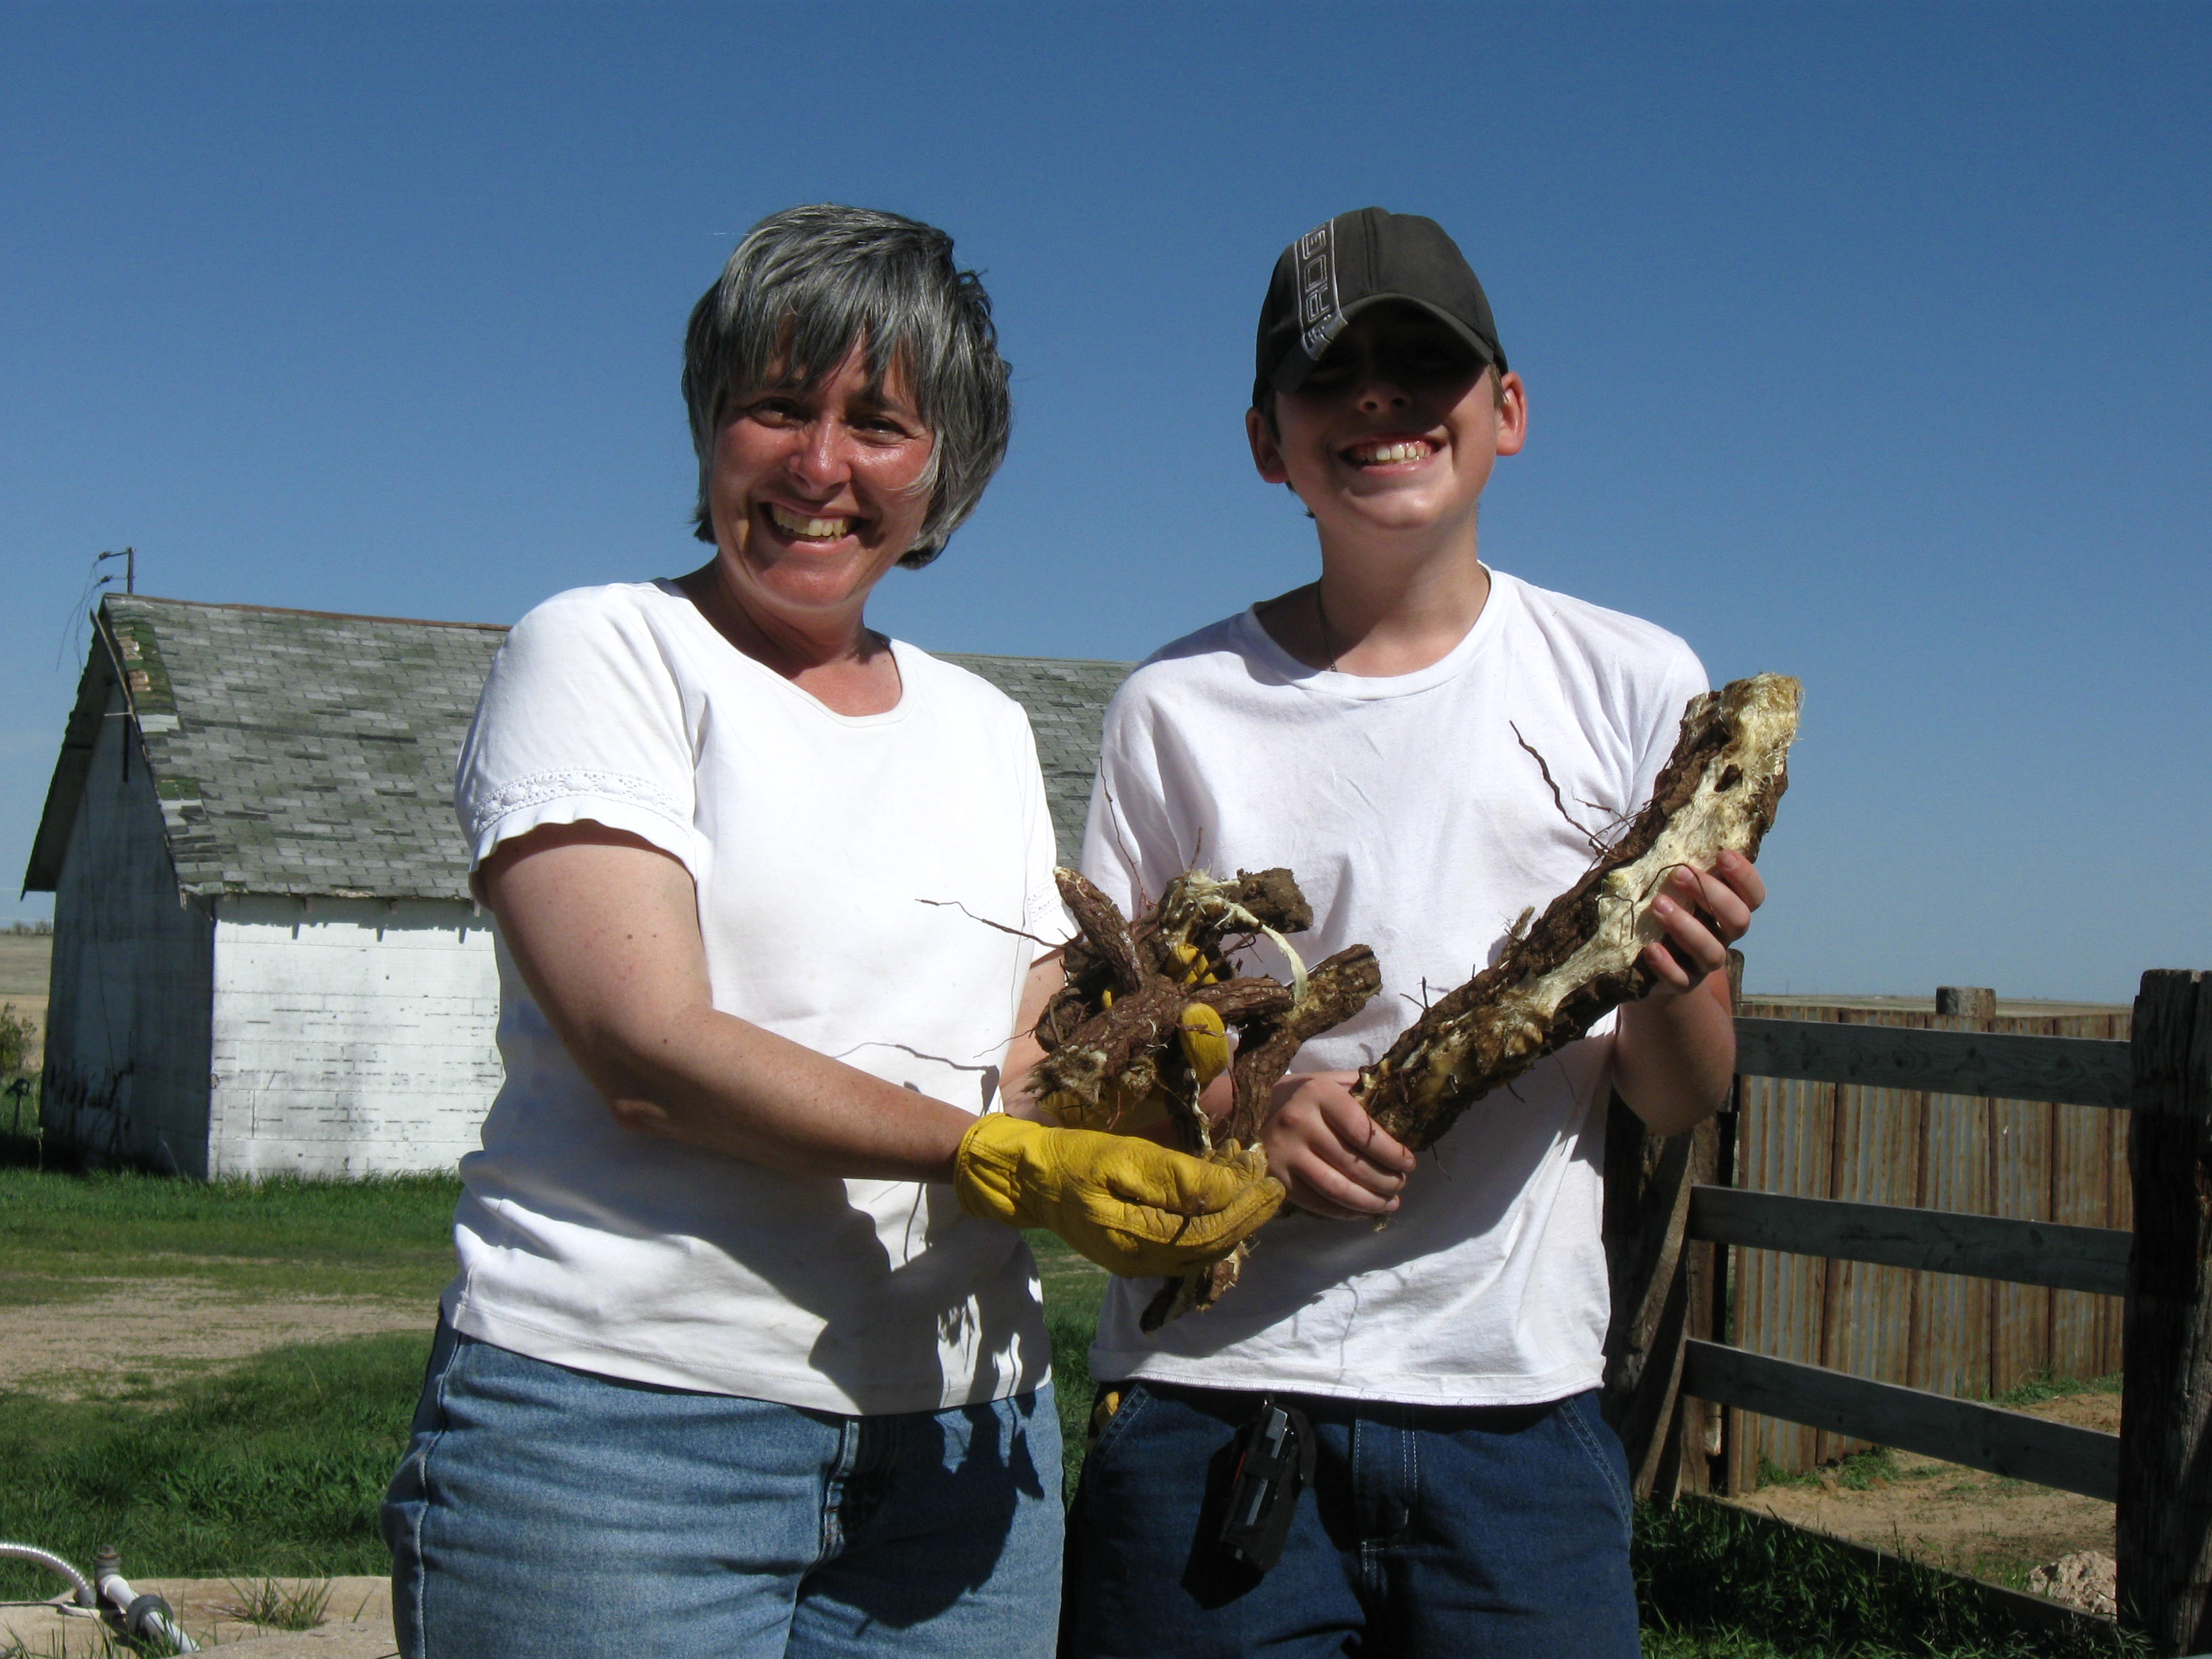 Returning victorious with hands full of yucca root